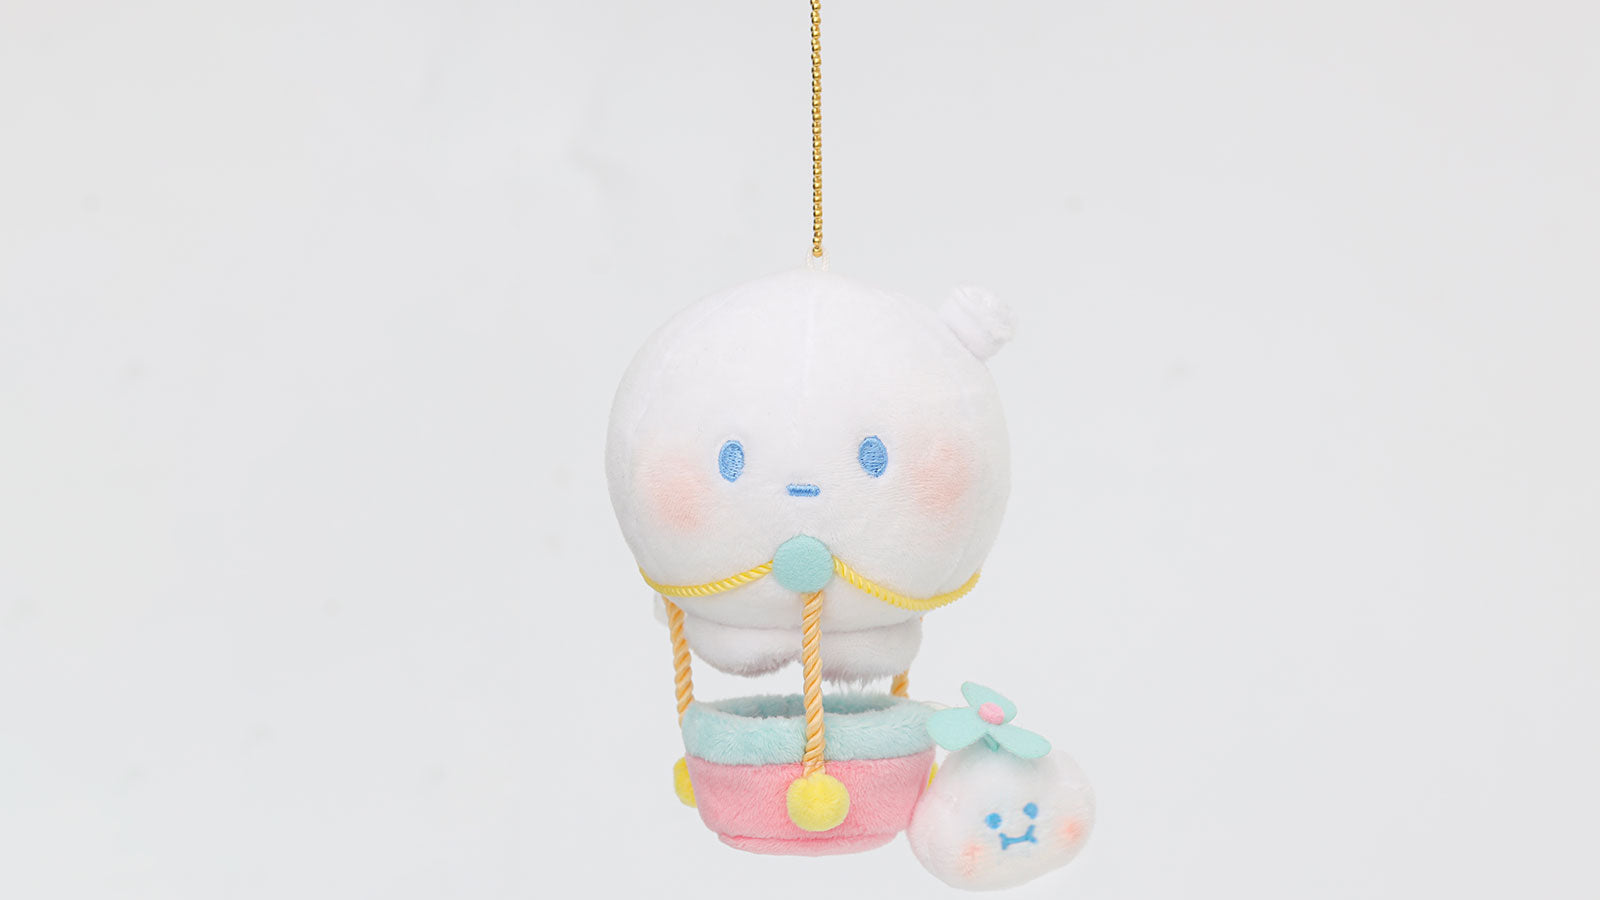 https://cdn.shopifycdn.net/s/files/1/0339/7091/3412/files/2-1POP_MART_BOBO_COCO_Hot_Air_Balloon_Plush_Pendant.jpg?v=1615975397